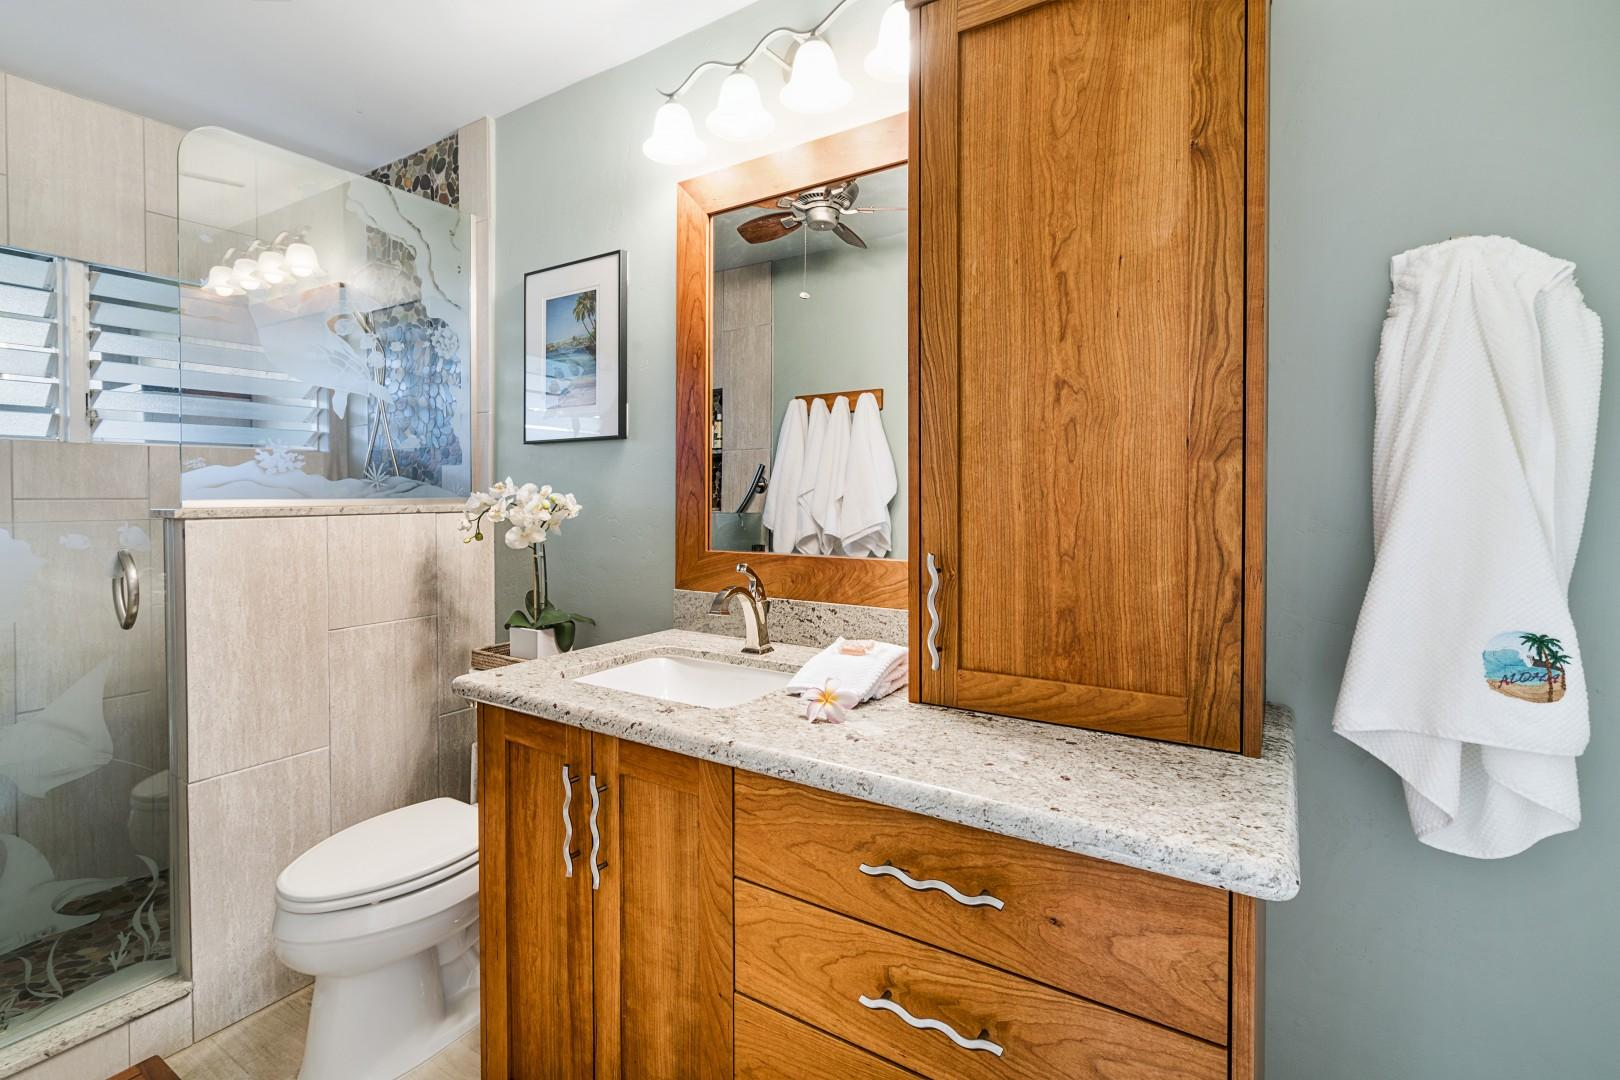 Spacious bathroom with washer/dryer